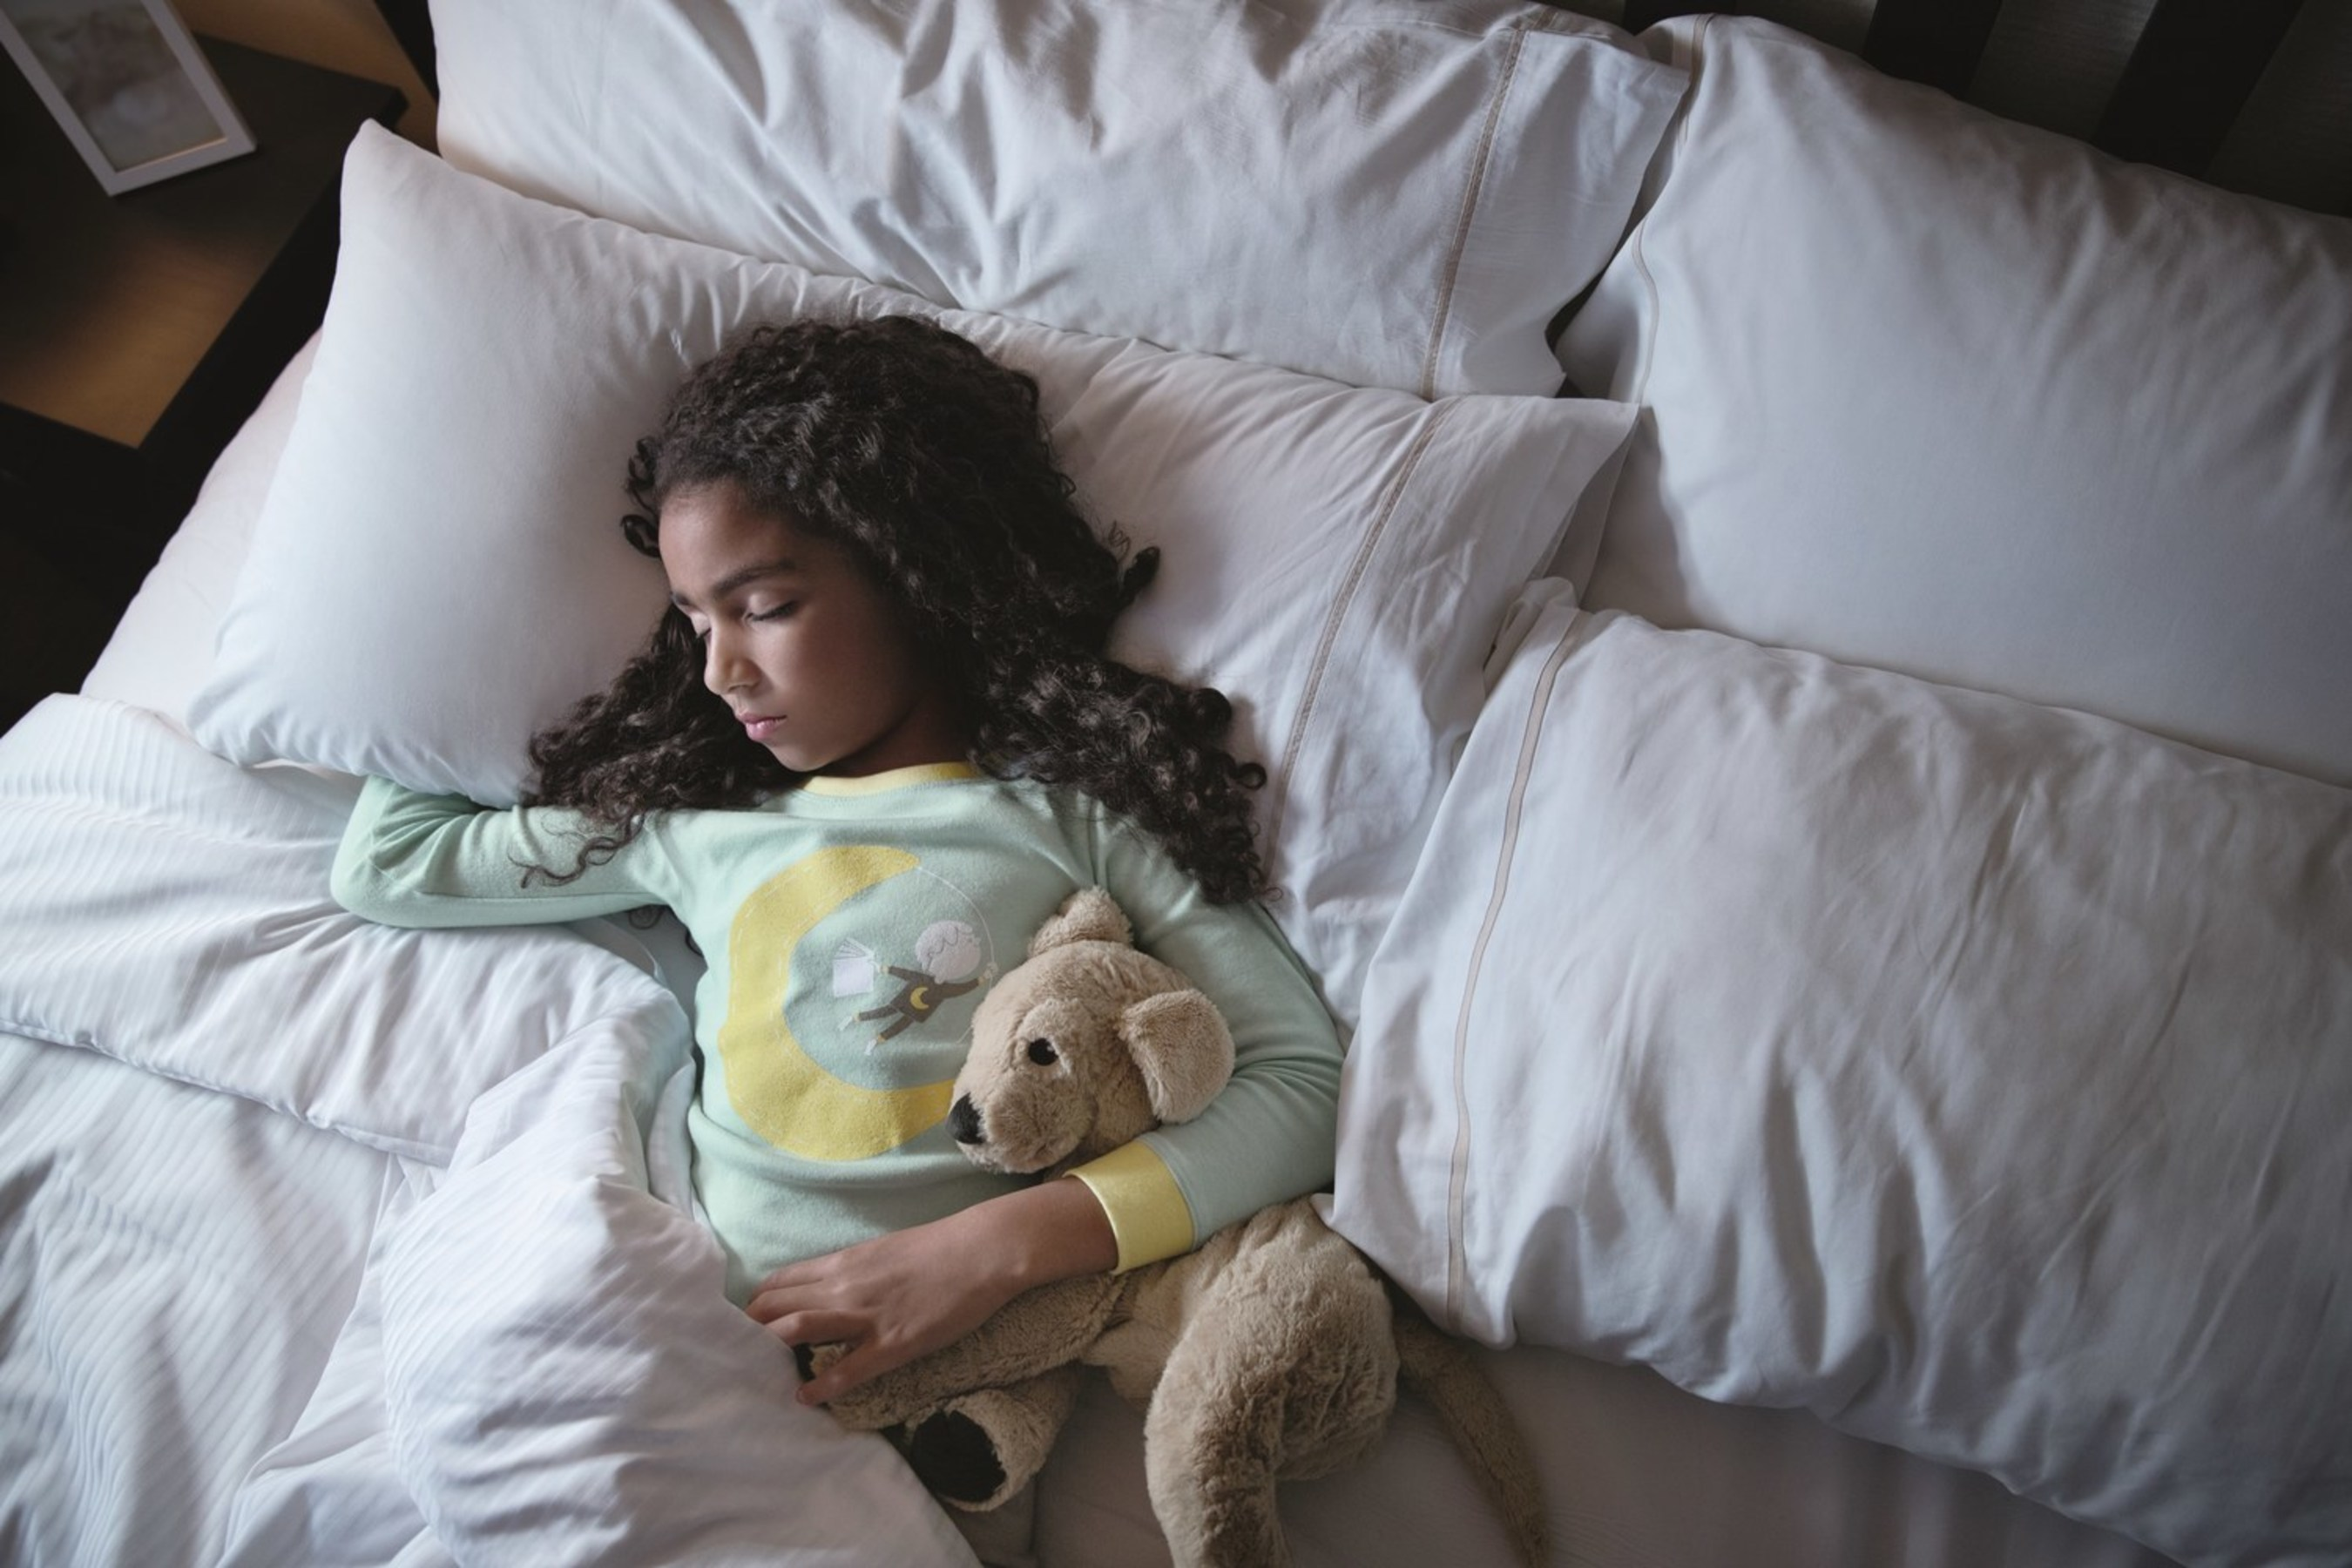 Hospitality's Wellness Pioneer, Westin Reimagines a Good Night's Sleep Through The Power of Pajamas with the launch of Project Rise: ThreadForward.